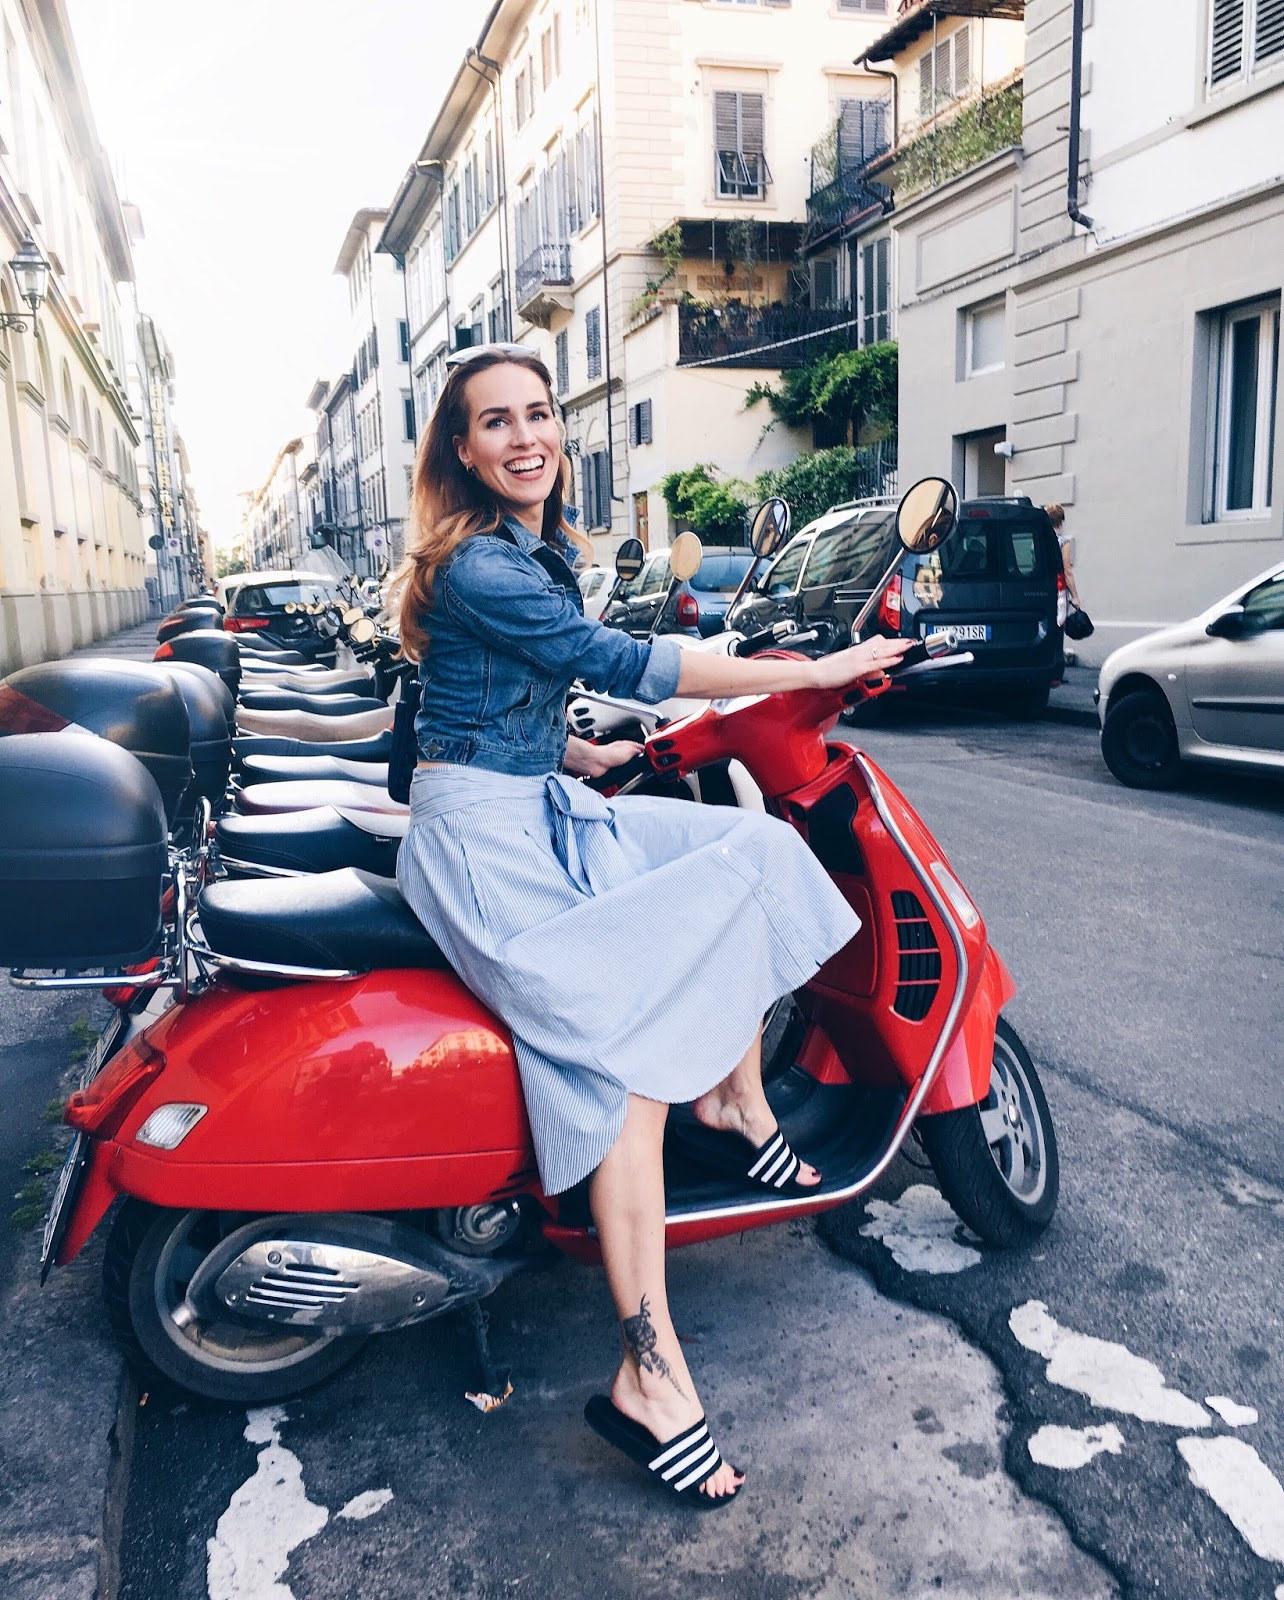 summer italy red vespa